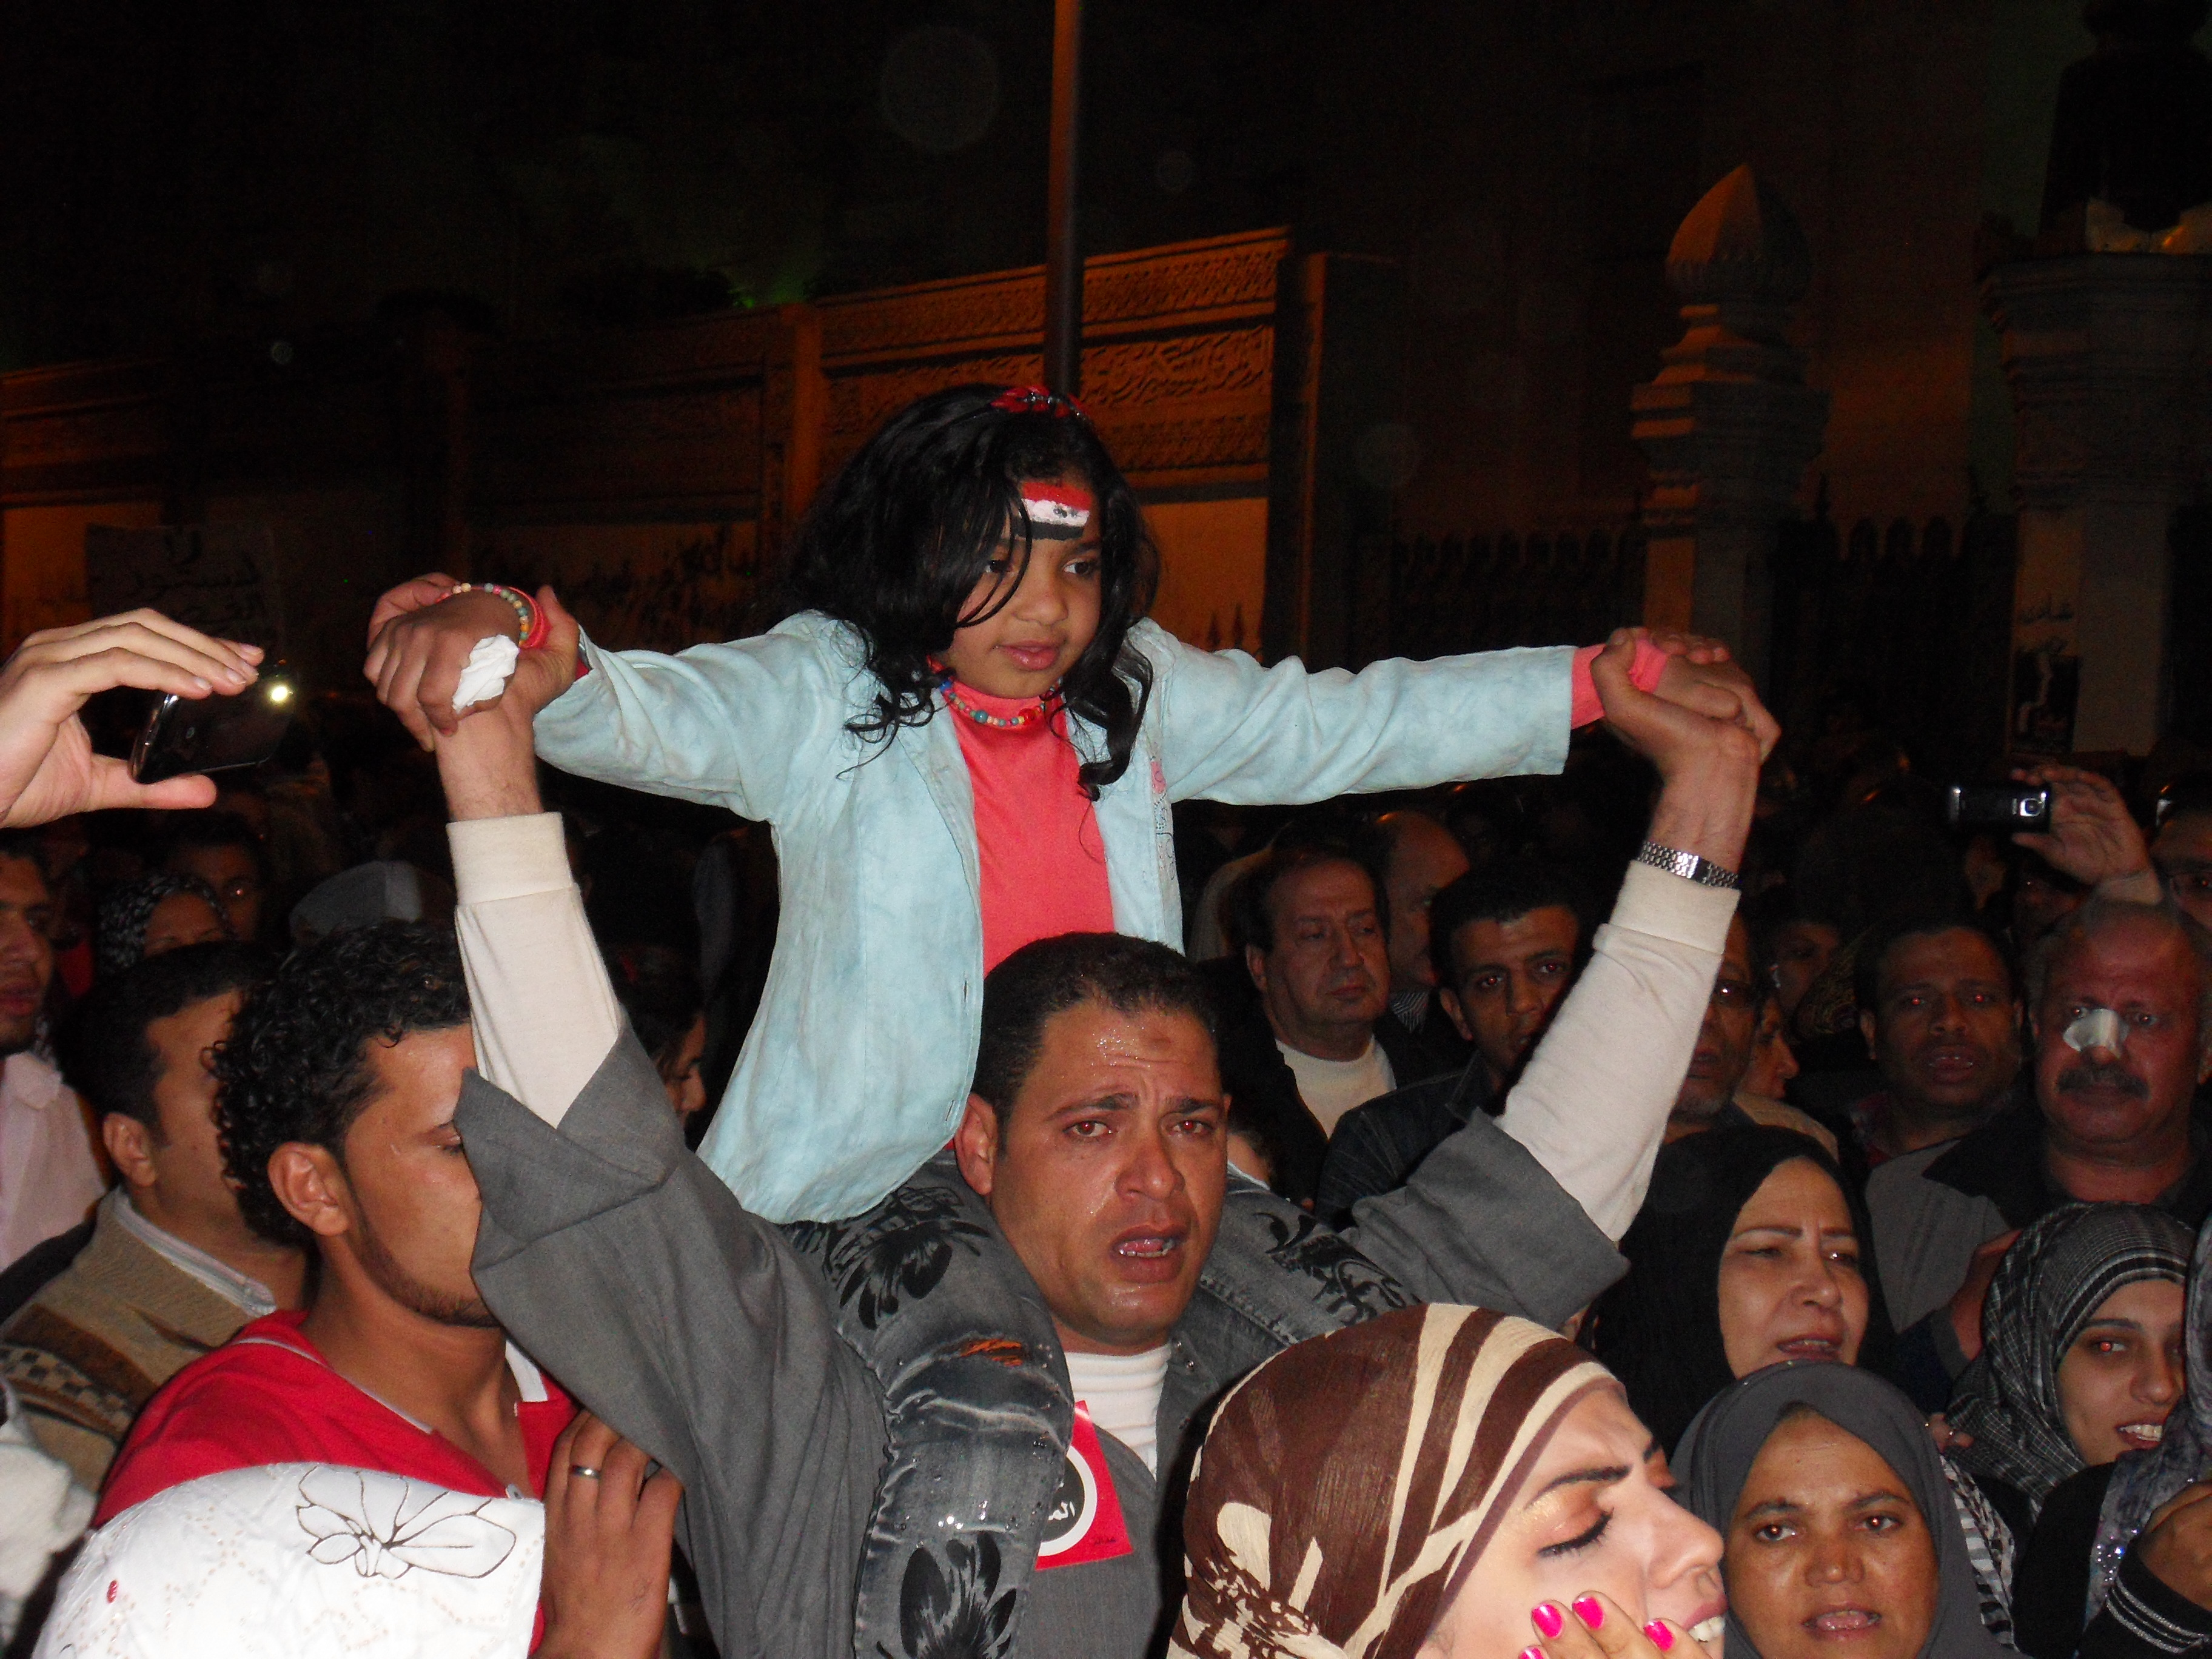 One of the few children I saw tonight. She was leading the crowd's chants.